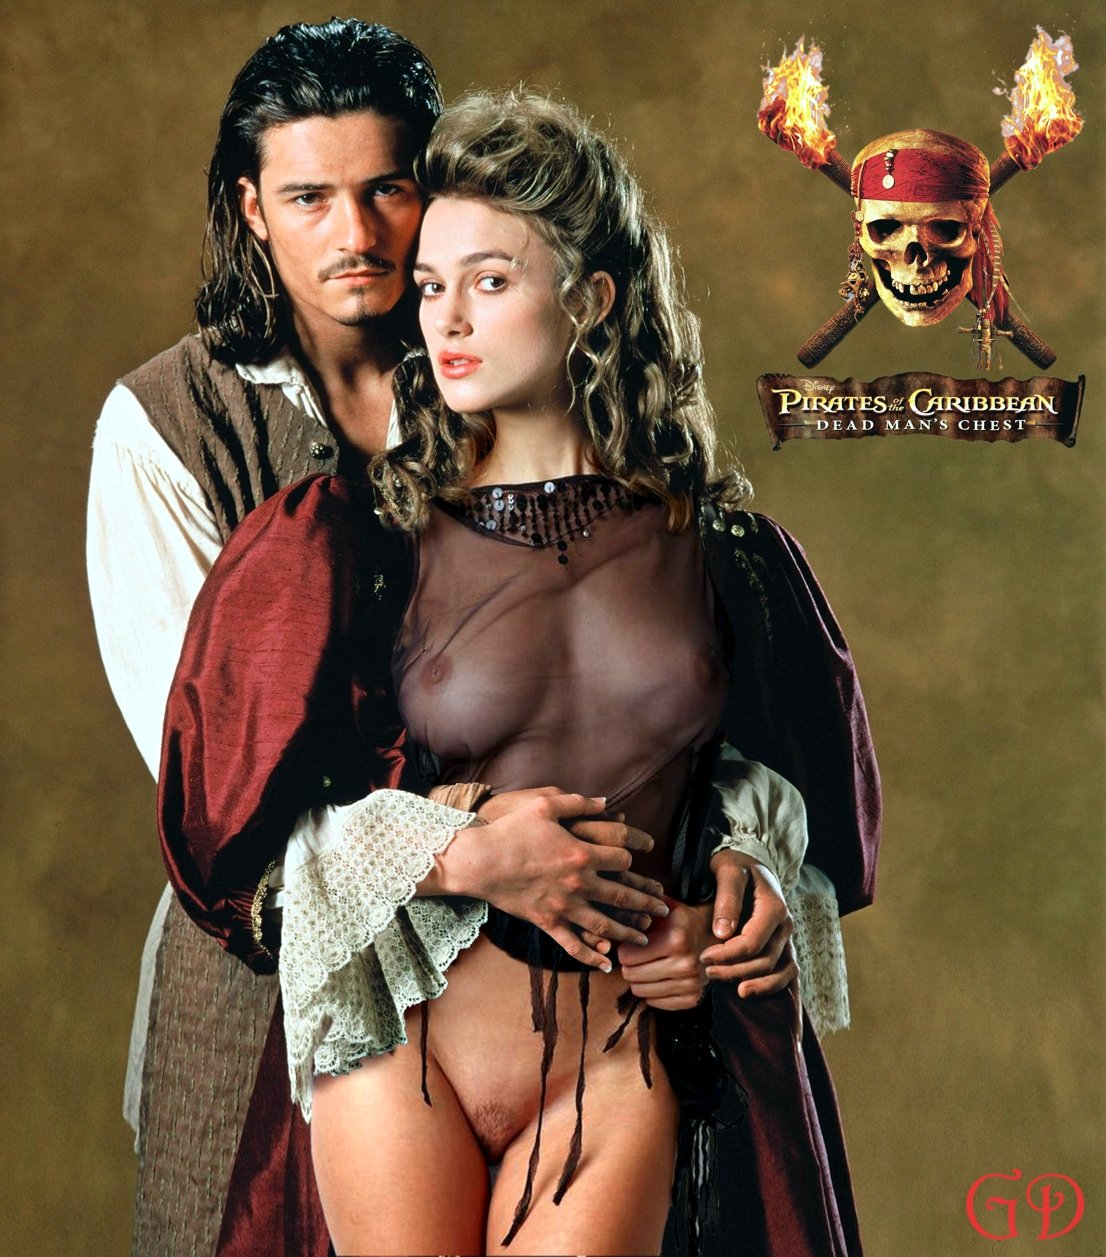 Pirates of the caribbean xxx pic pron scene